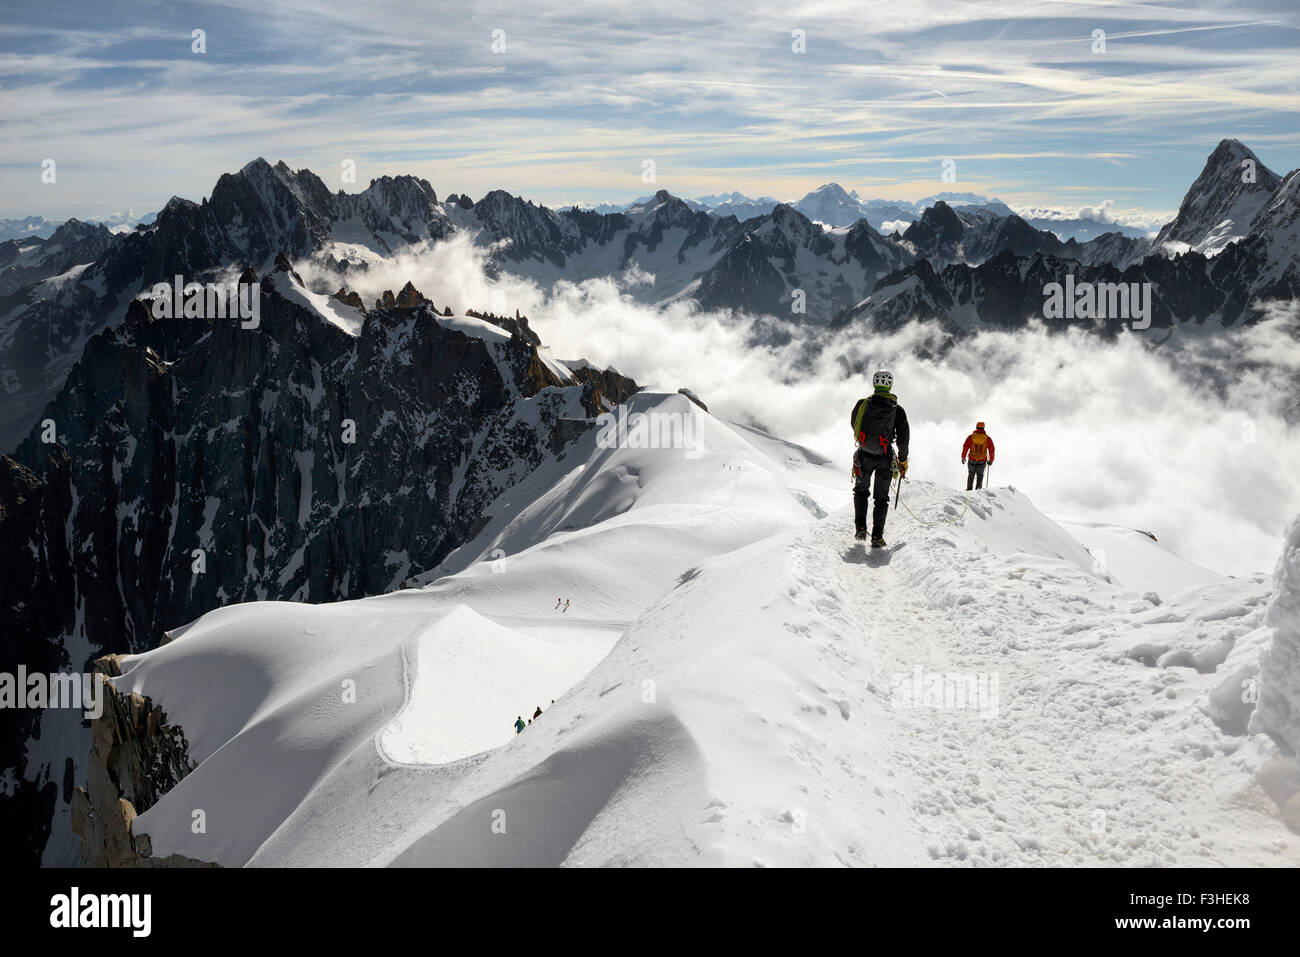 Mountaineers and climbers, Aiguille du Midi, Mont Blanc Massif, Chamonix, French Alps, Haute Savoie, France, Europe Stock Photo